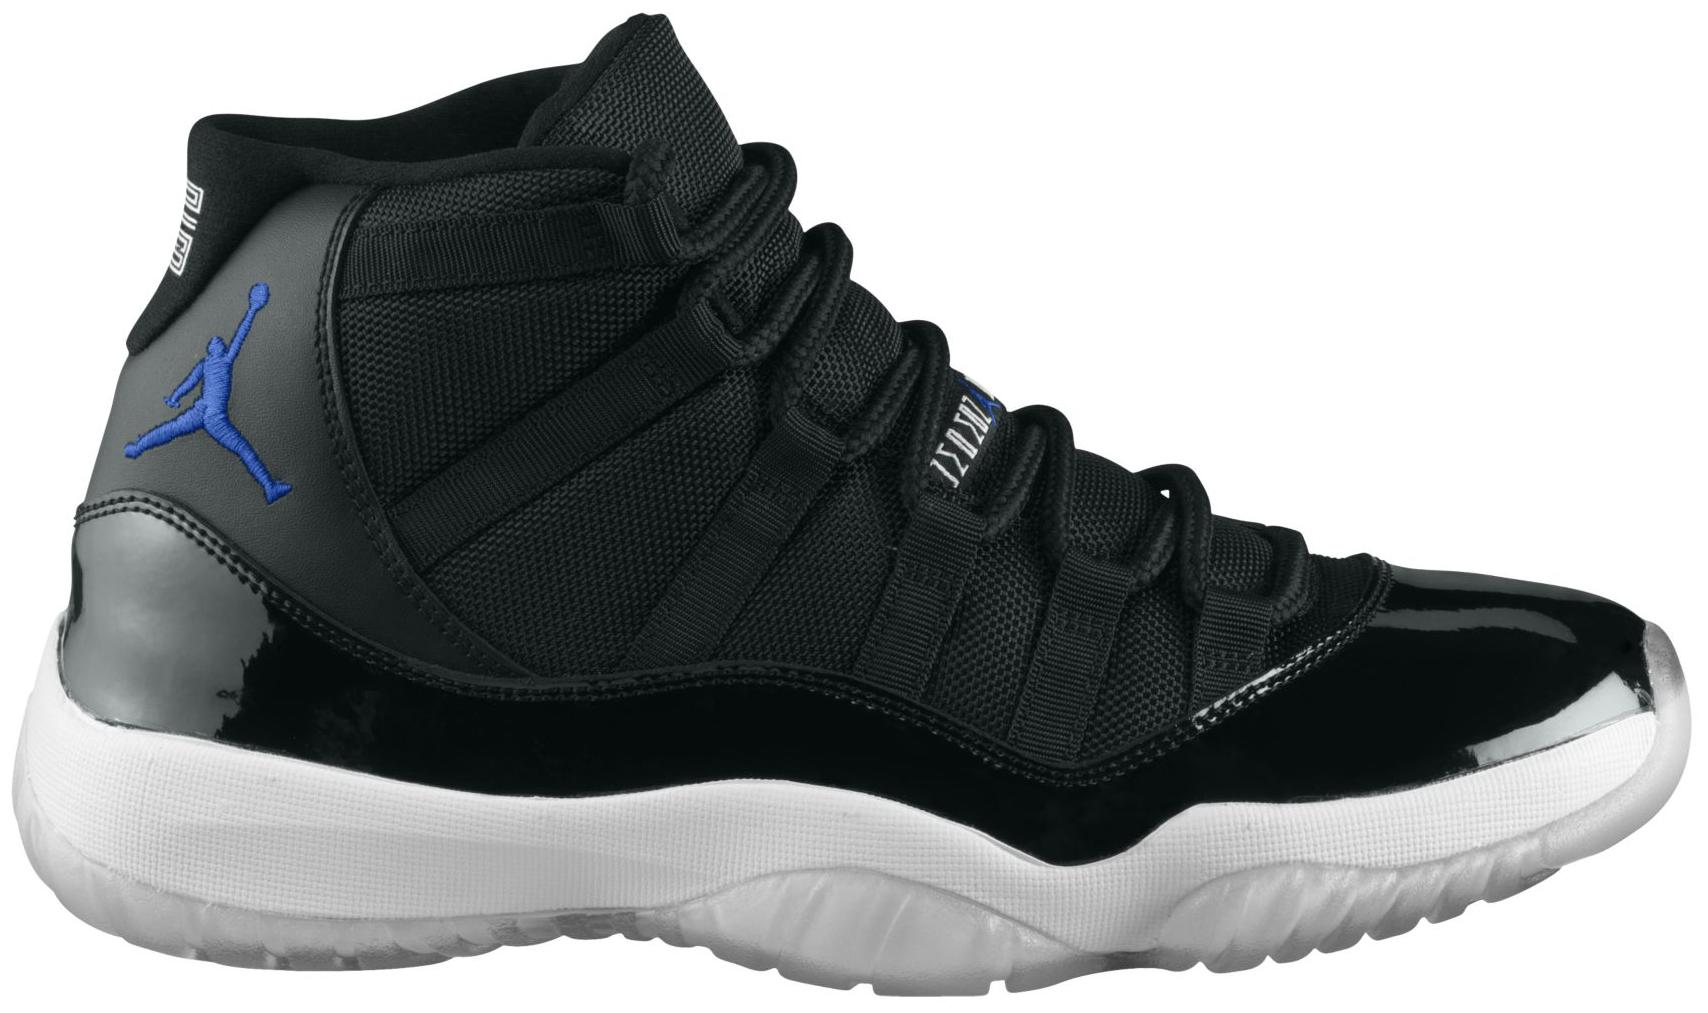 Jordan 11 Retro Space Jams (2009)